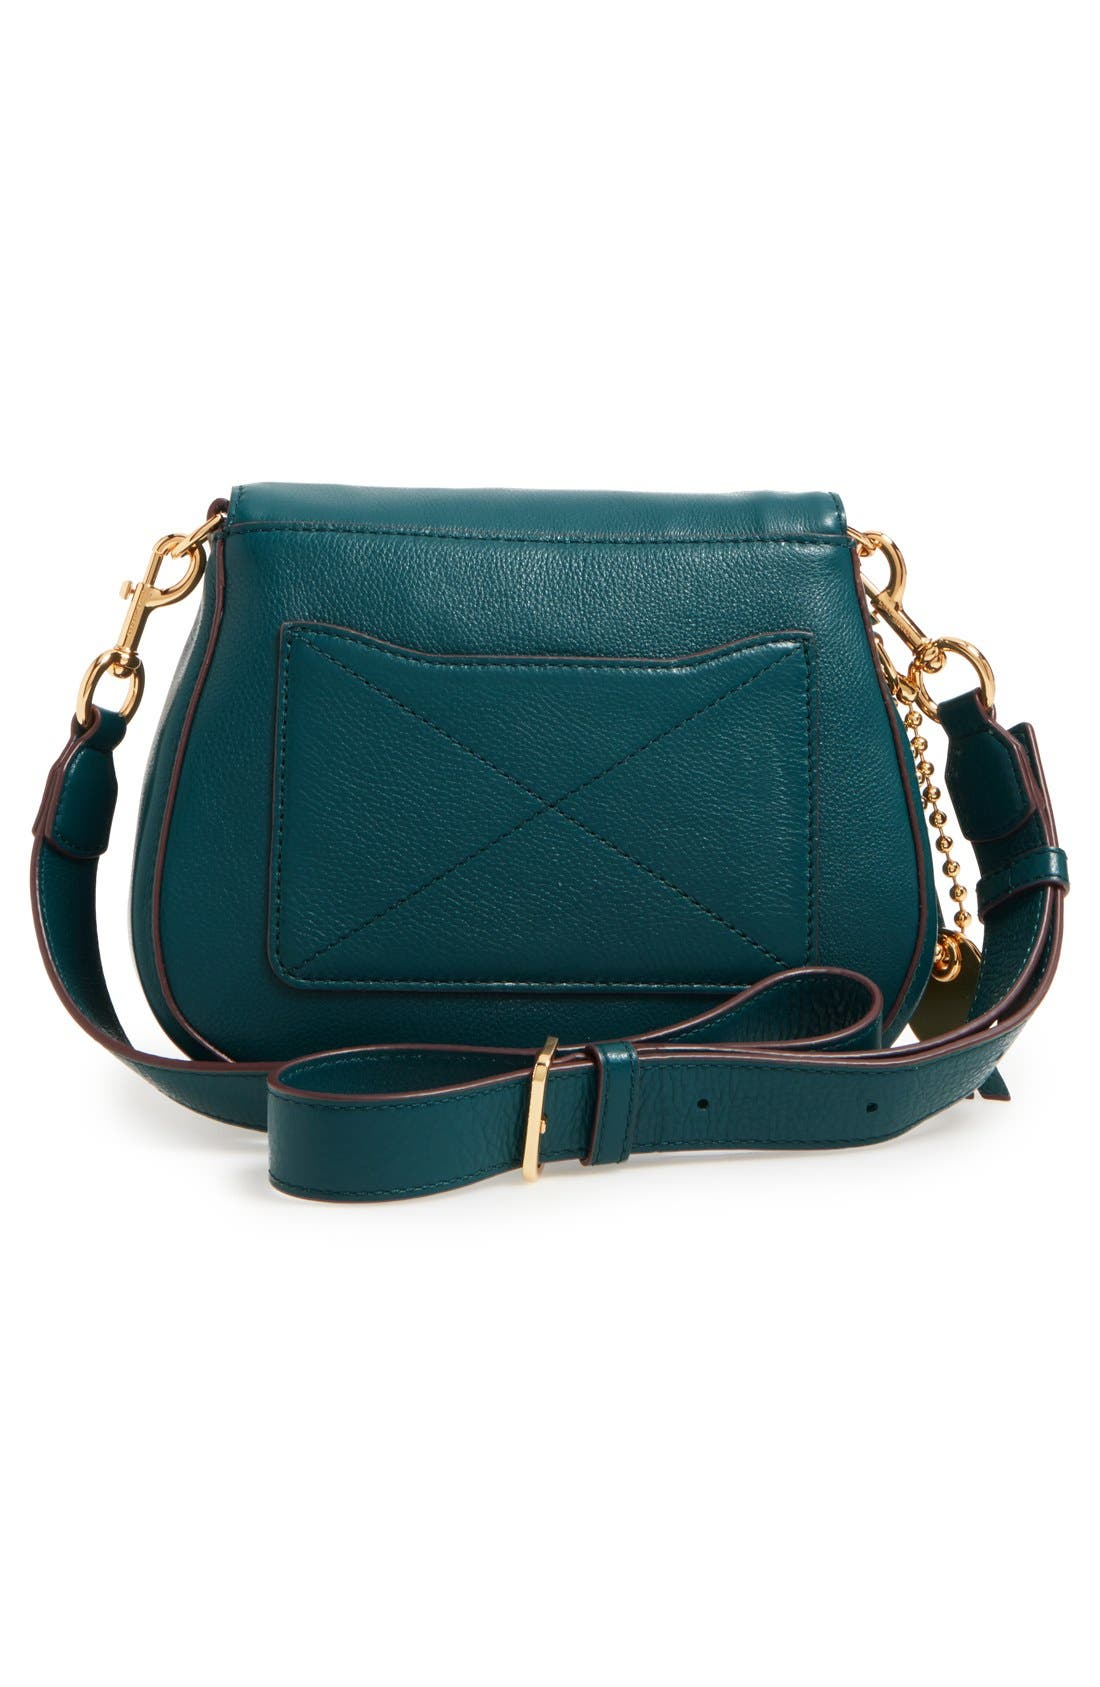 Small Recruit Nomad Pebbled Leather Crossbody Bag,                             Alternate thumbnail 37, color,